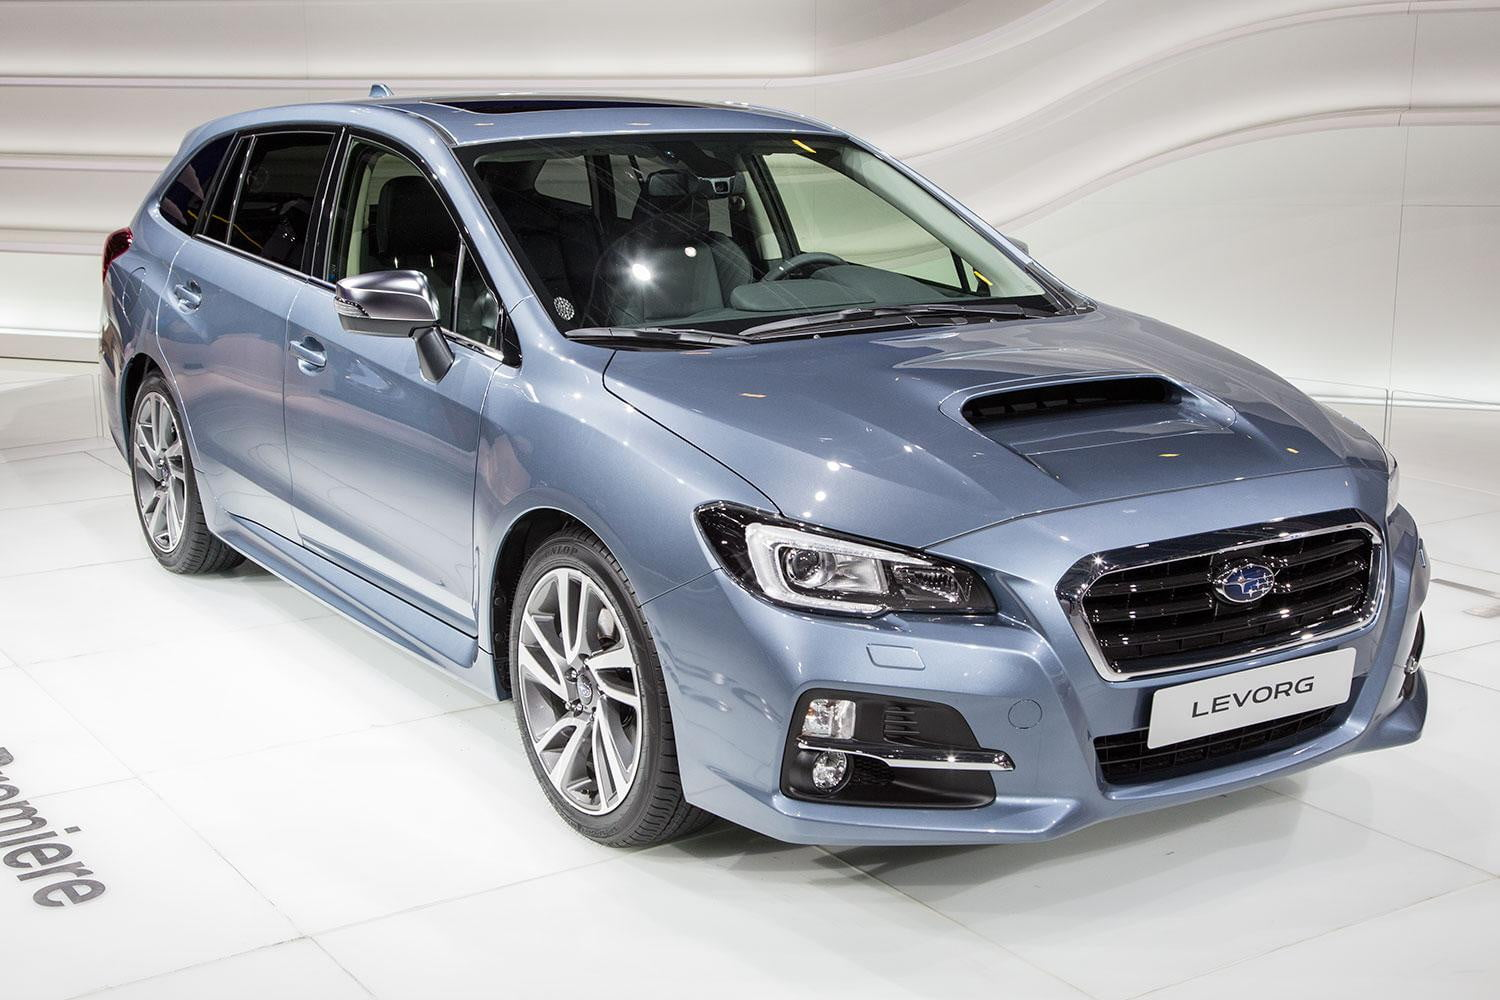 Subaru Dealership Near Me >> All We'll Drive: Why there's no Levorg in the US